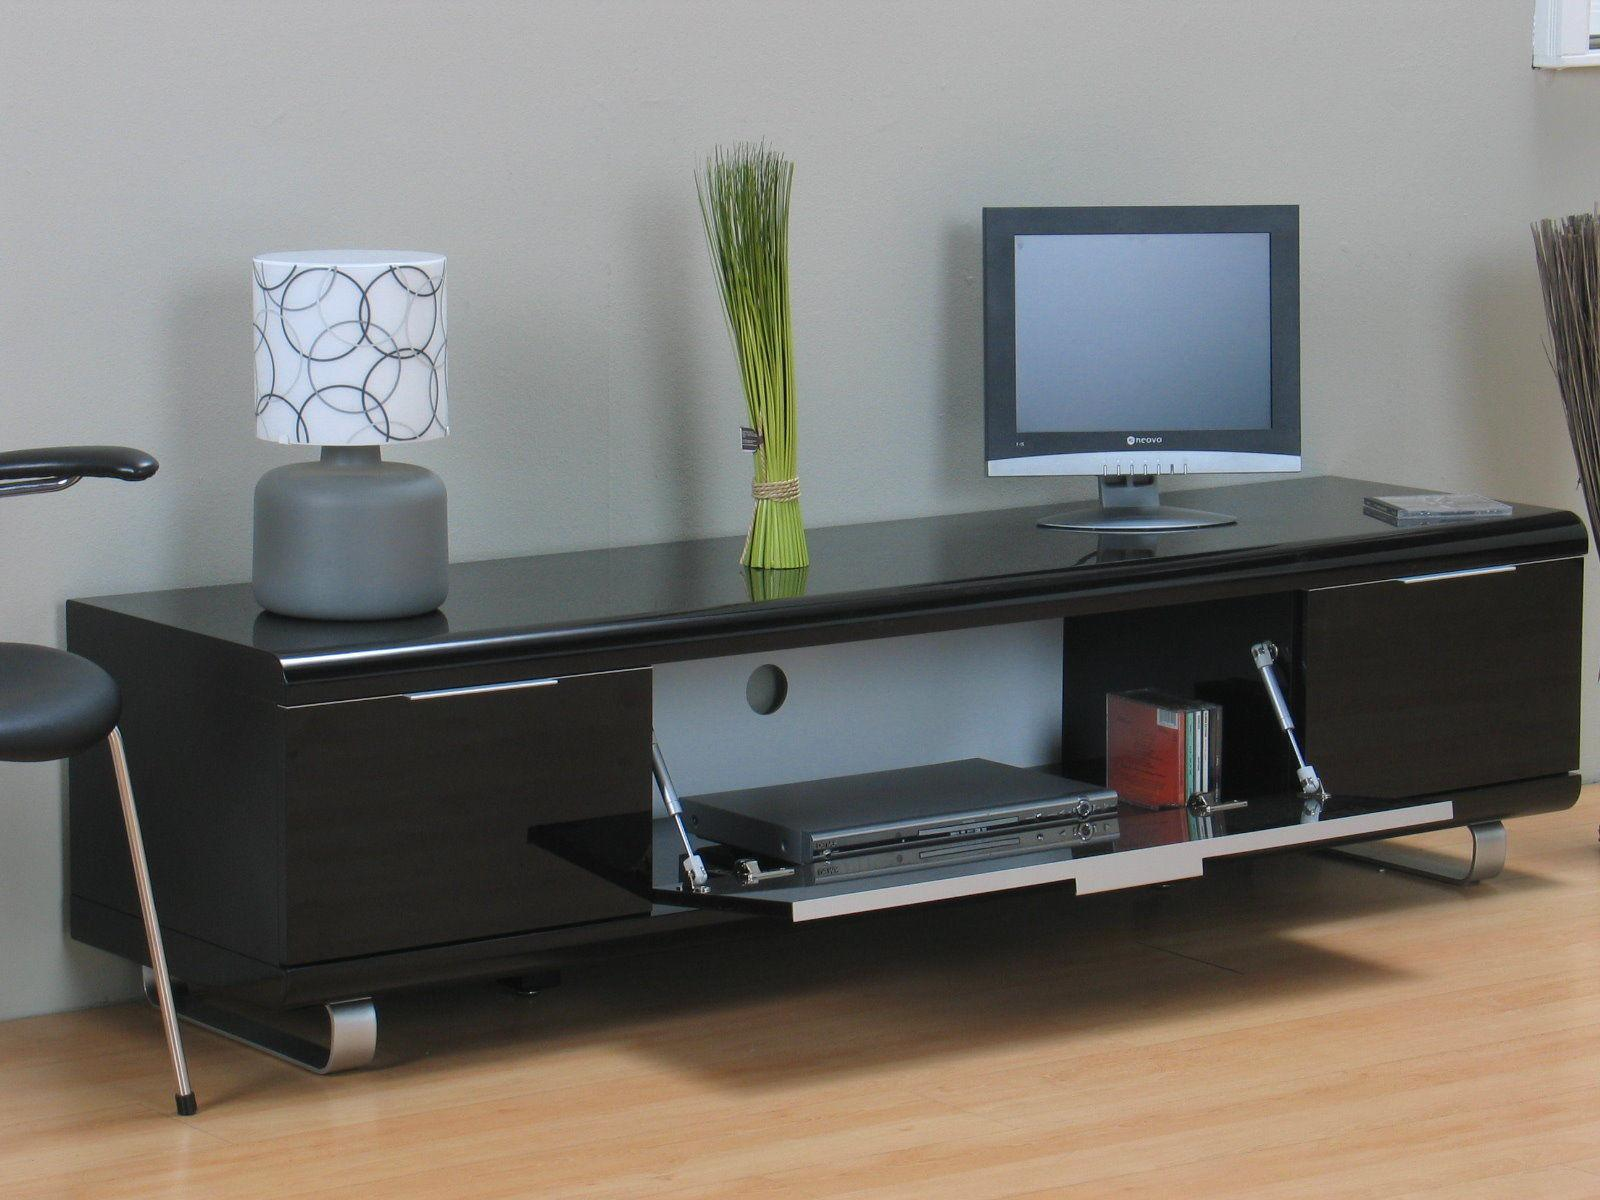 eck tv mbel finest acrylglas tvecktisch tveckrack with eck tv mbel fabulous full size of. Black Bedroom Furniture Sets. Home Design Ideas